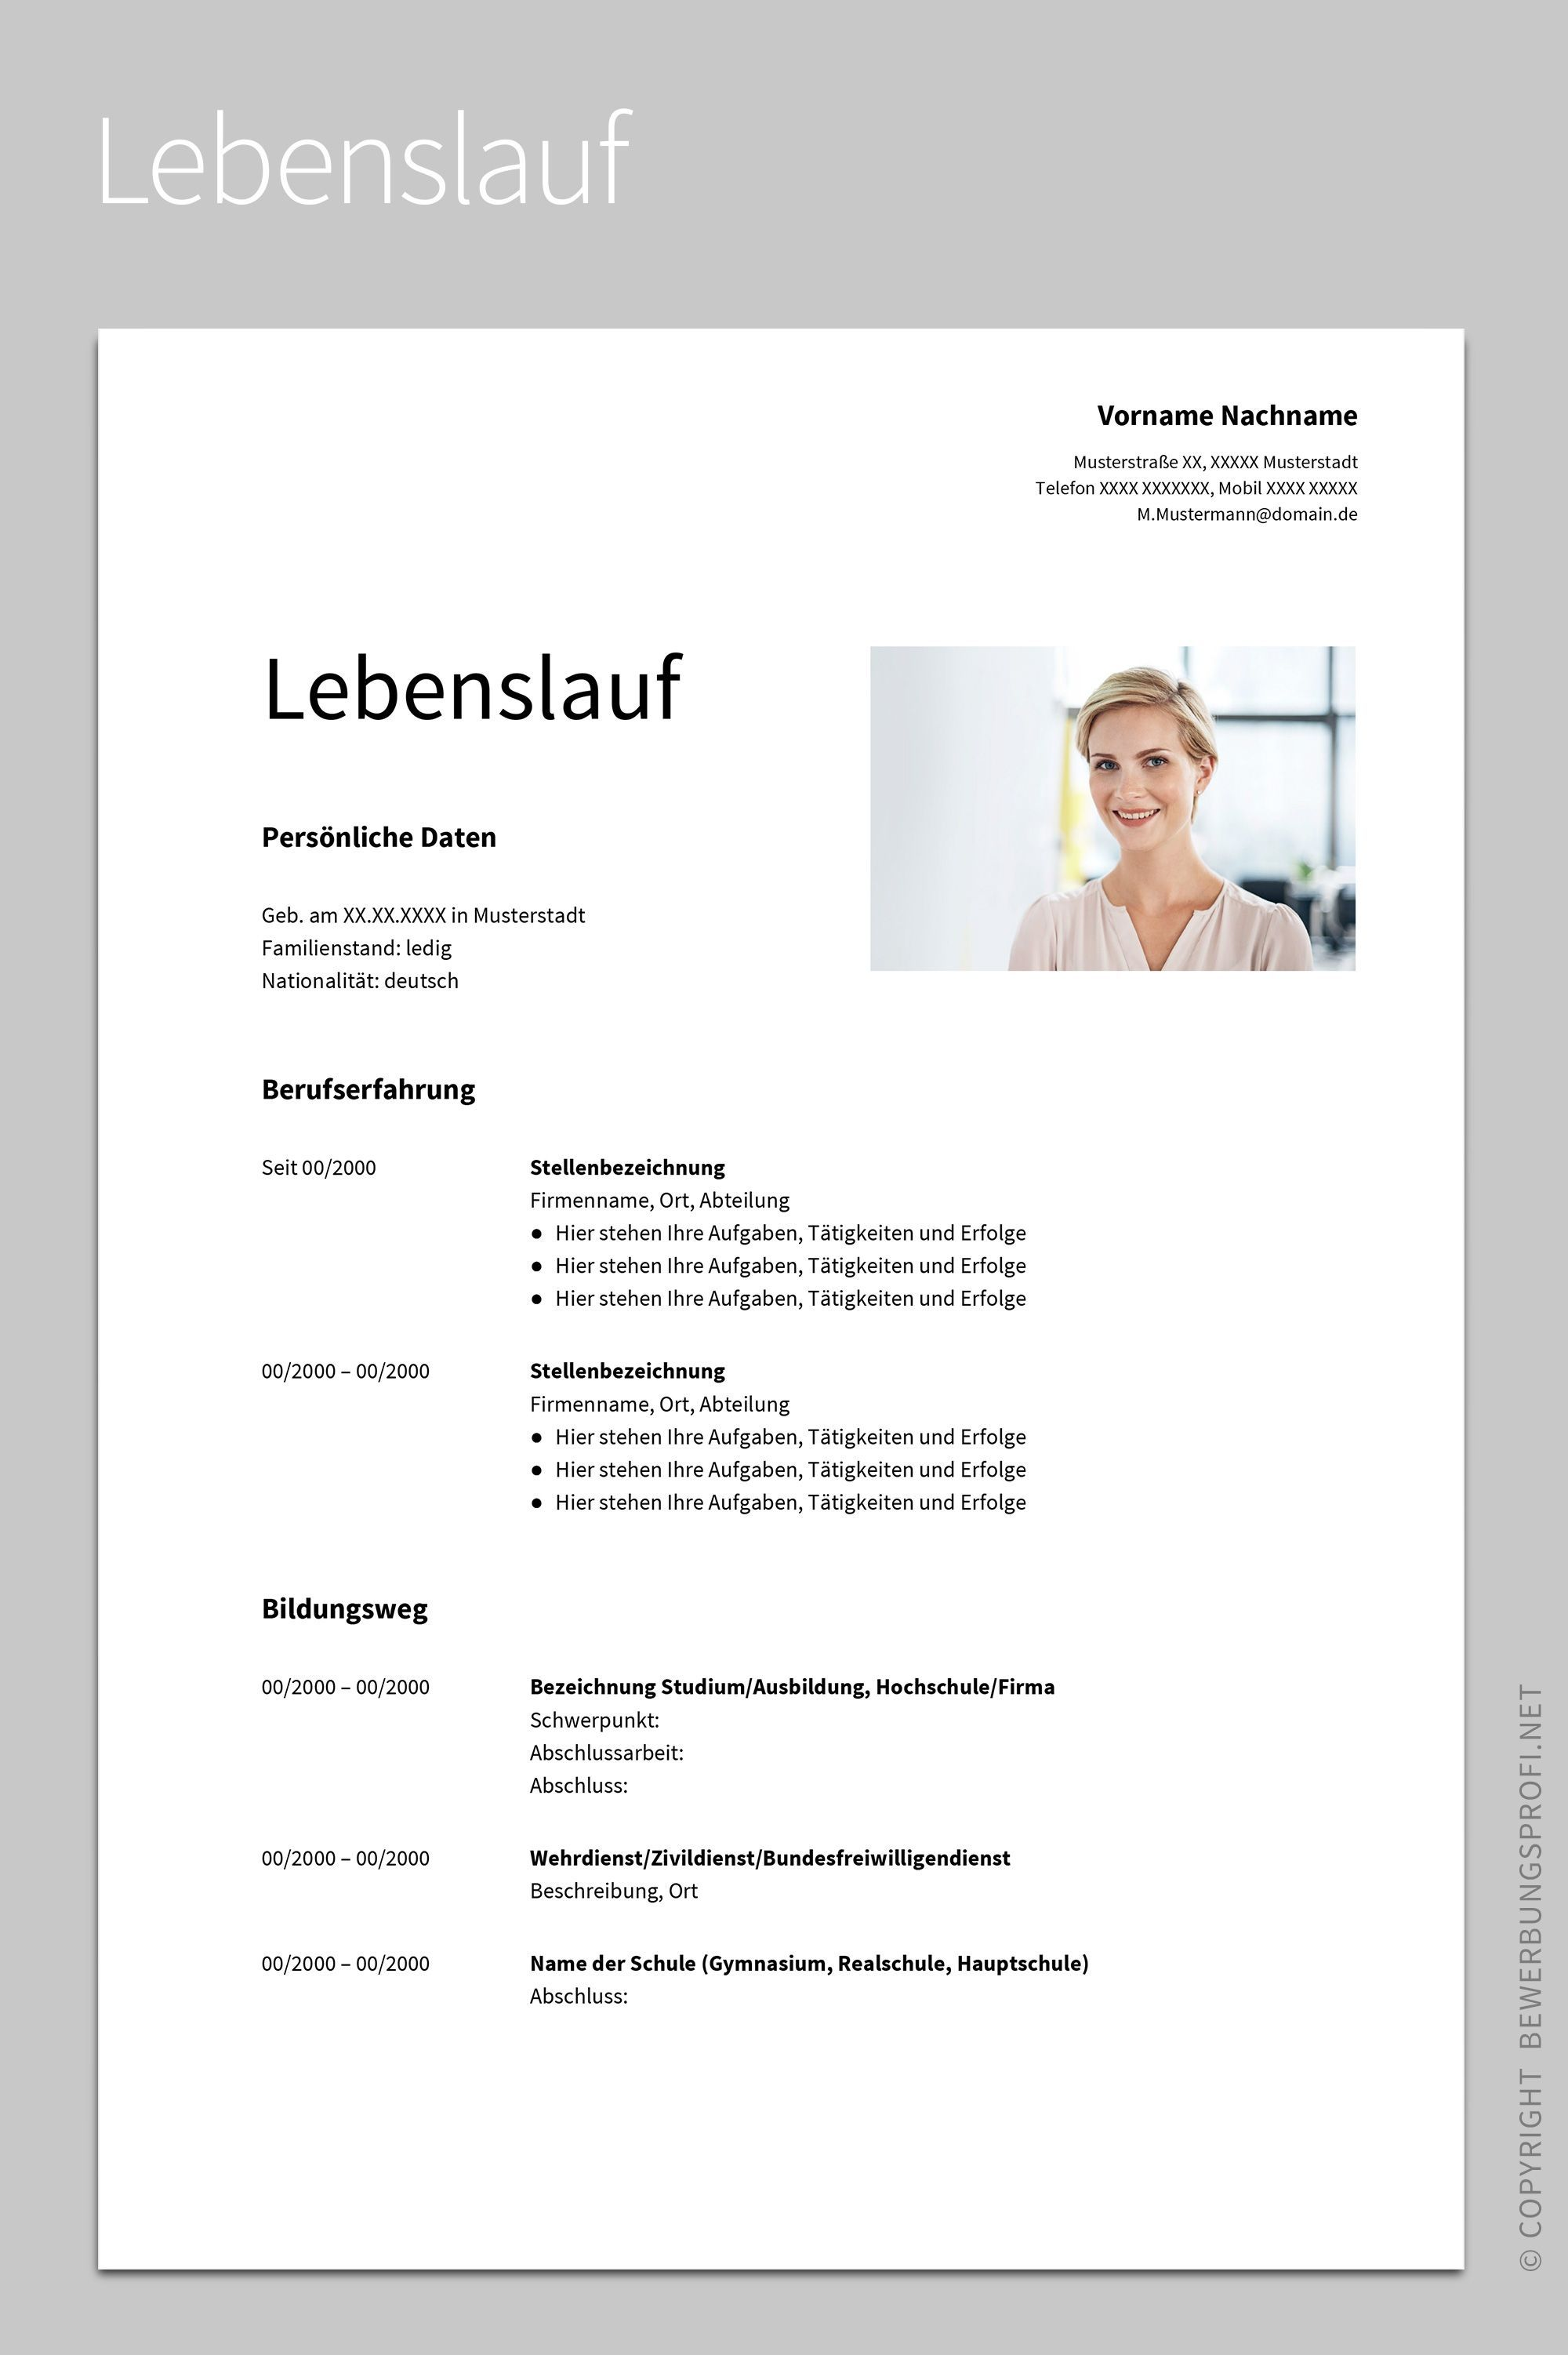 Lebenslauf 1 Albus Lebenslauf 1 Albus Albus Lebenslauf In 2020 German Language Learning Cover Letter For Resume Yoga Pose Ideas